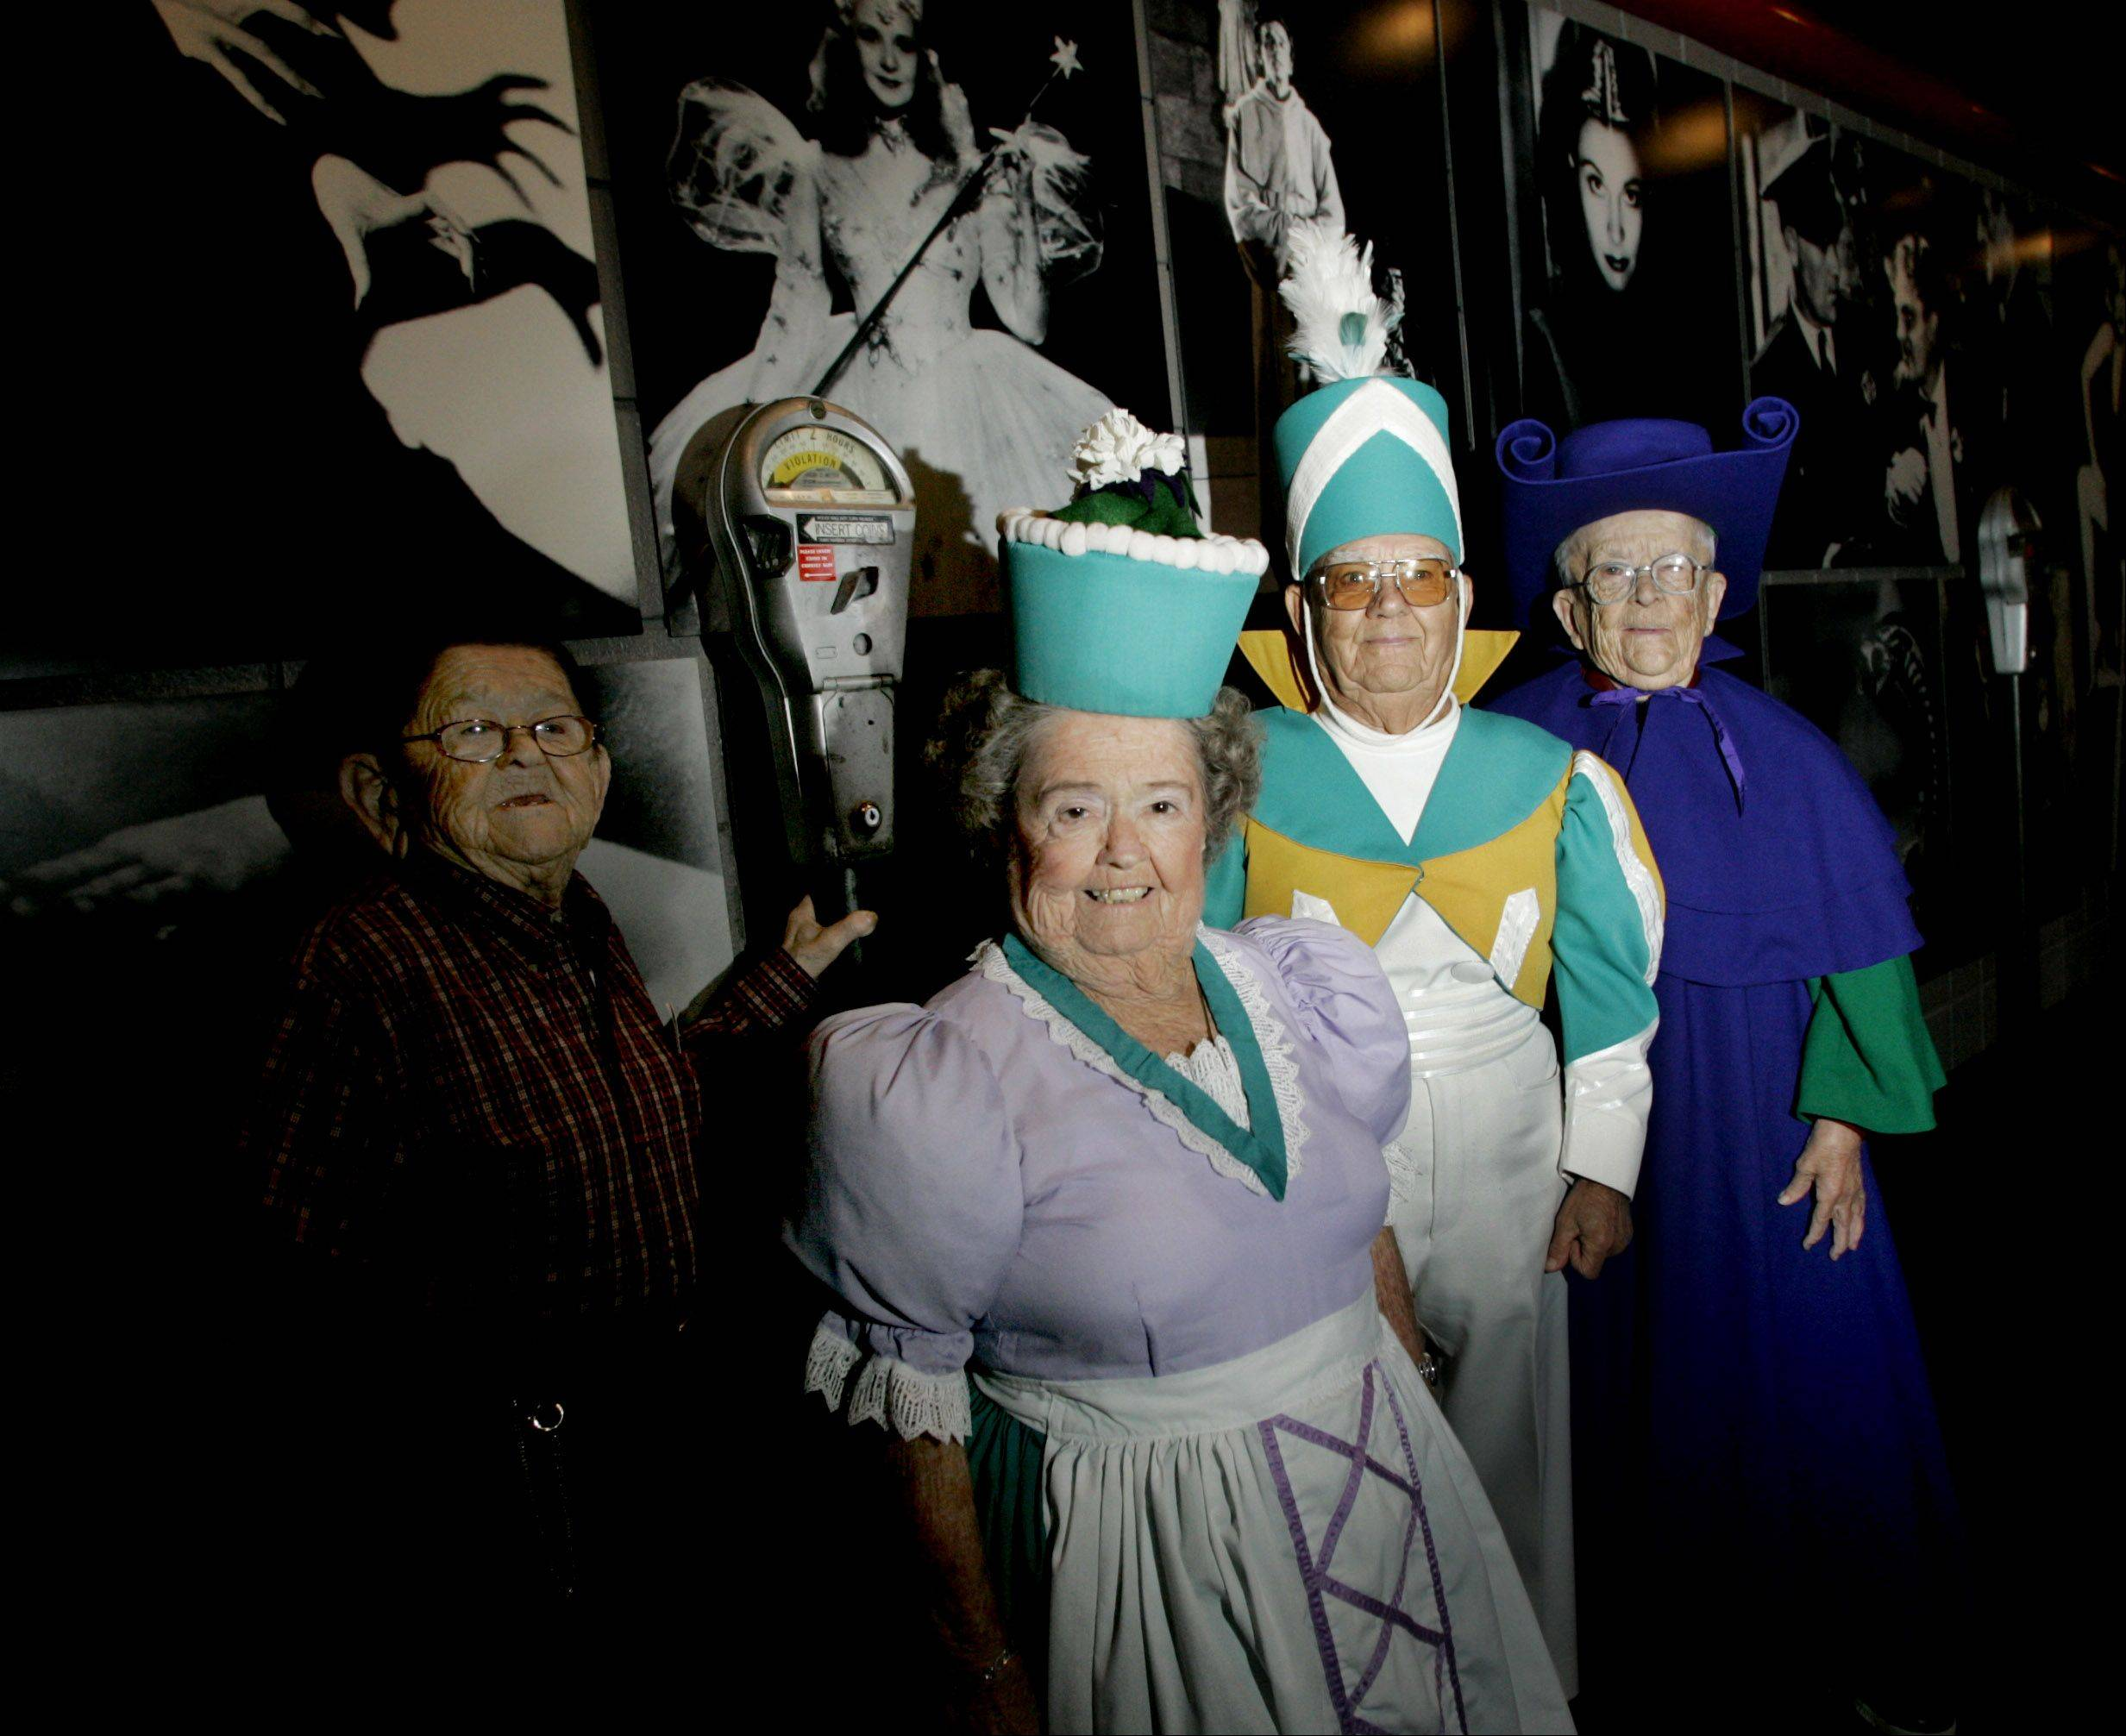 From left, Karl Slover, Menhardt Raabe, Margaret Pellegrini, Clarence Swenson and Menhardt Raabe, all munchkins that appeared in the film The Wizard of Oz. in Woodridge at the Hollywood Blvd movie theater for a showing of the film in November 2005.